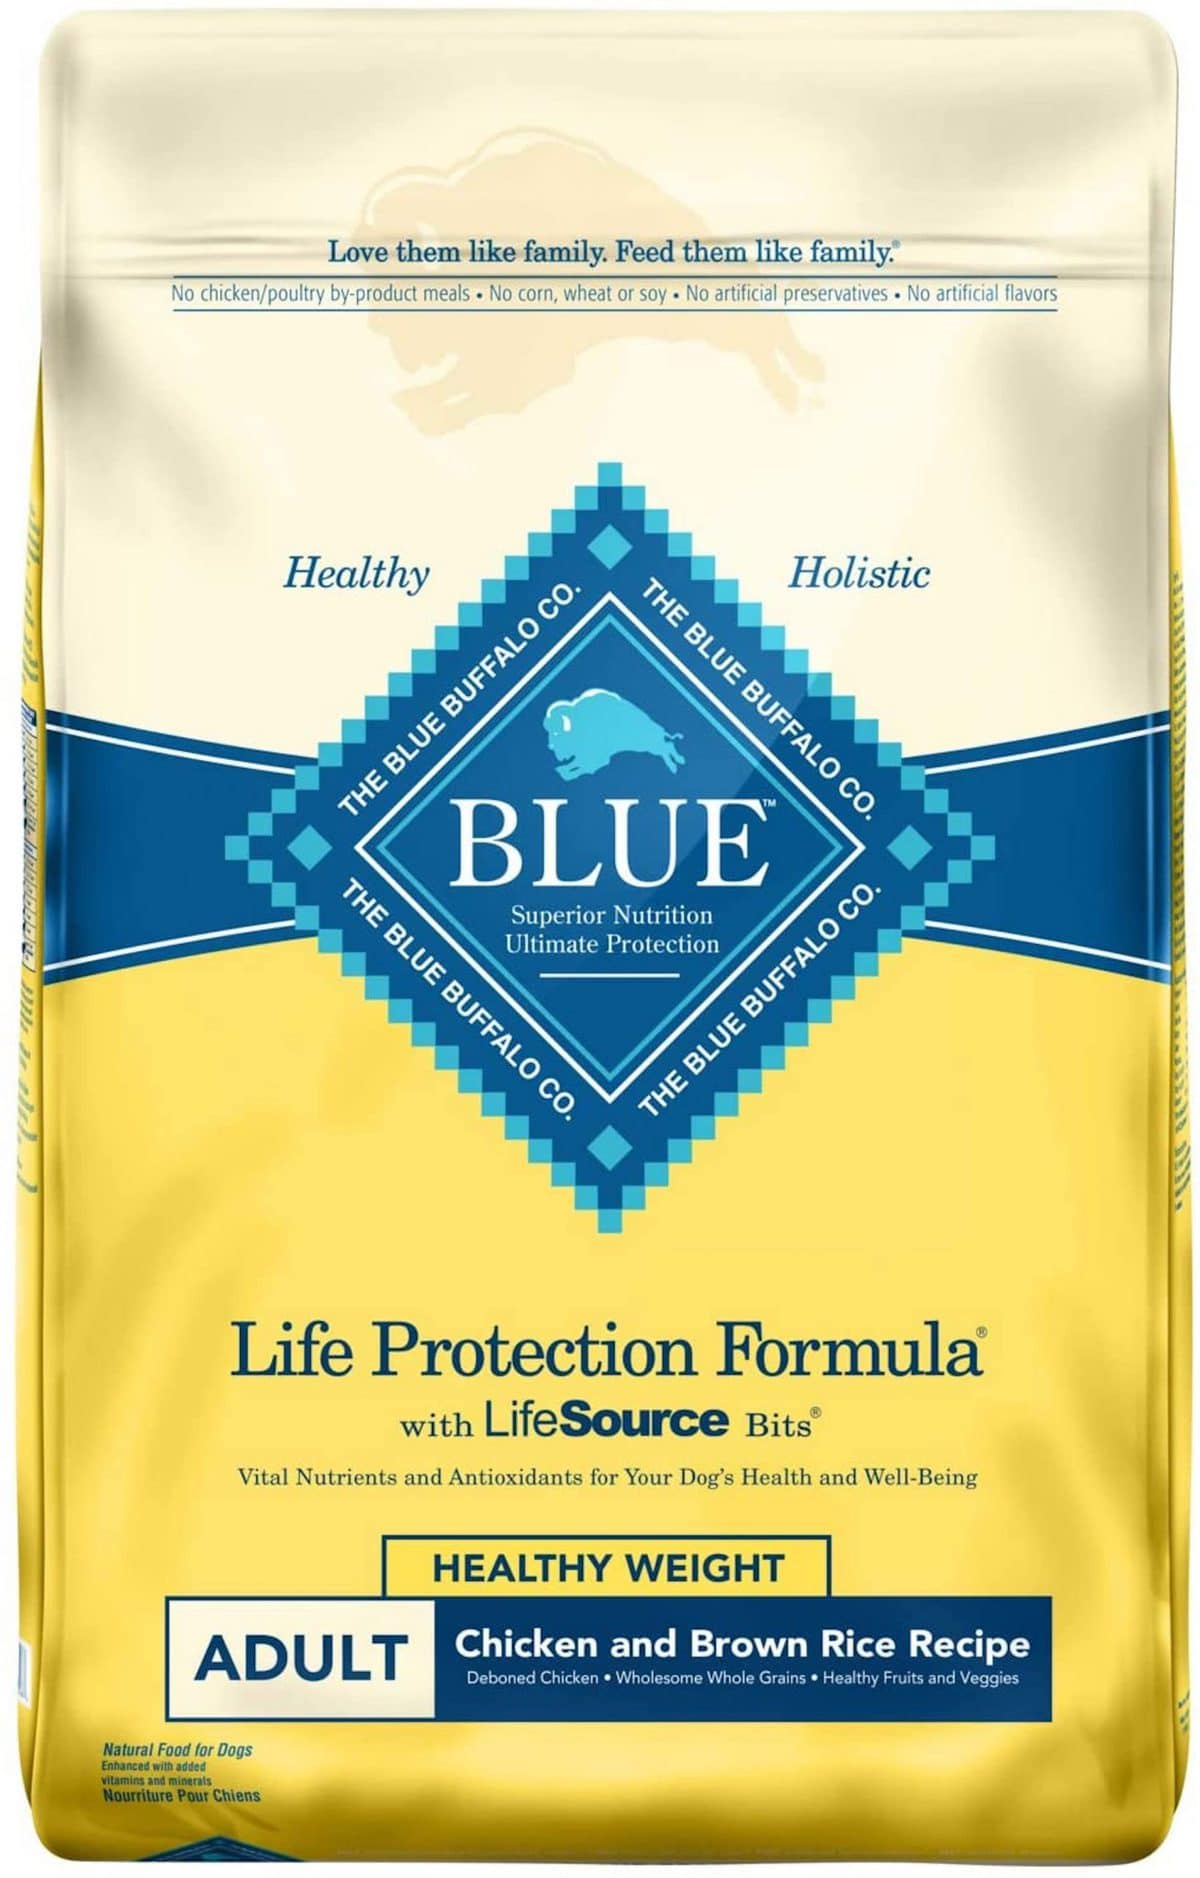 4. Blue Buffalo Life Protection Healthy Weight